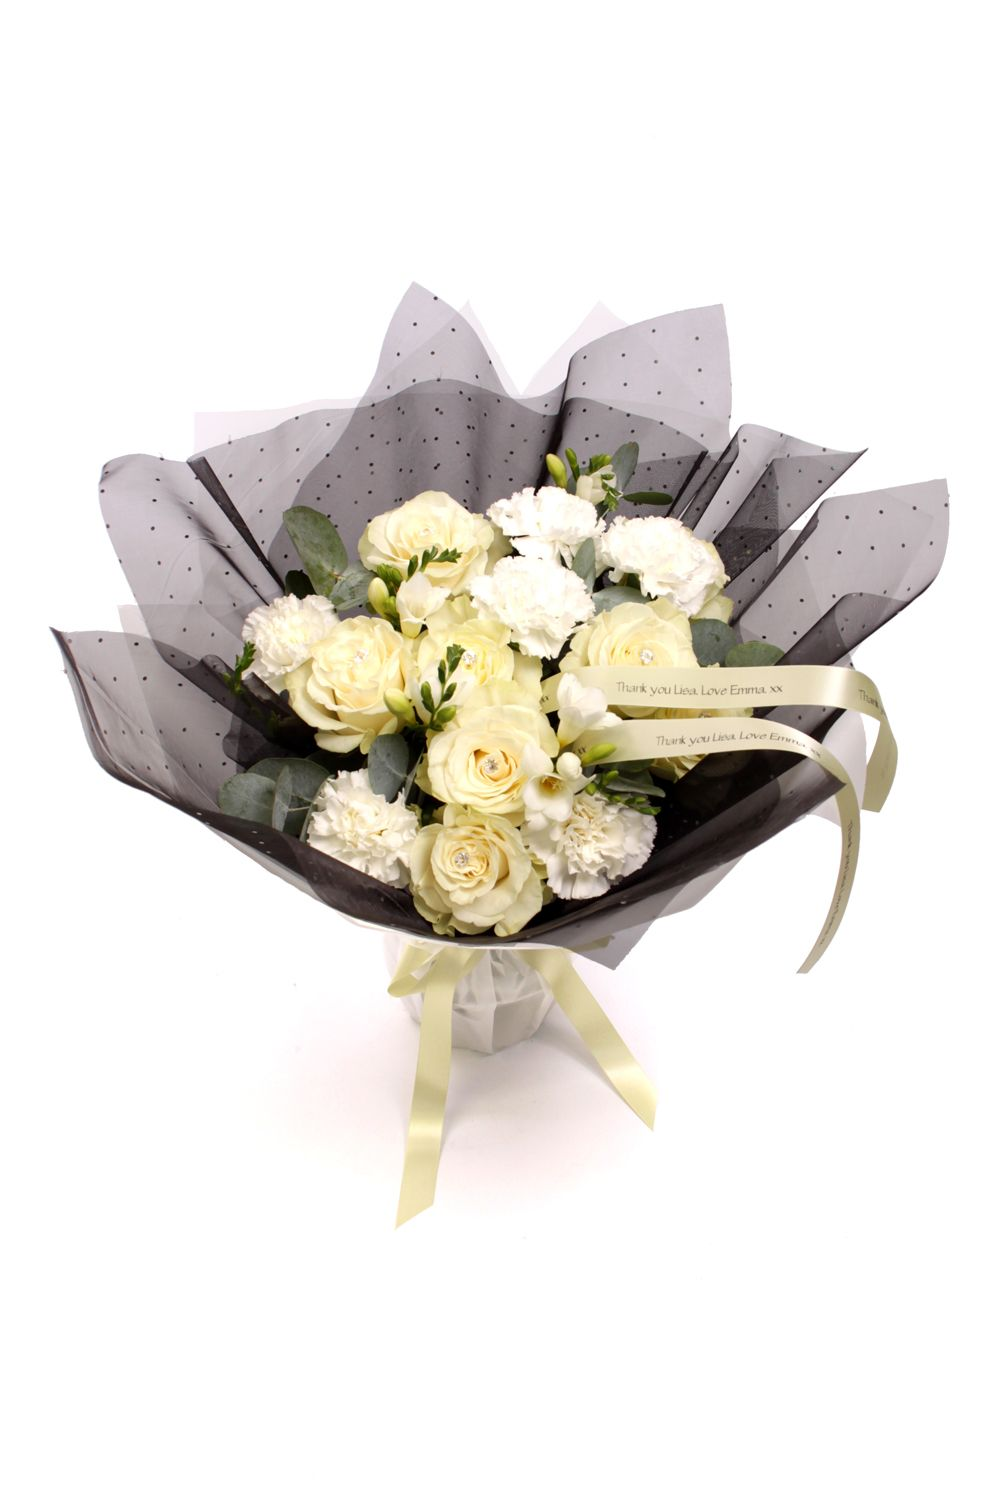 Image of Floric Diamond bright bouquet